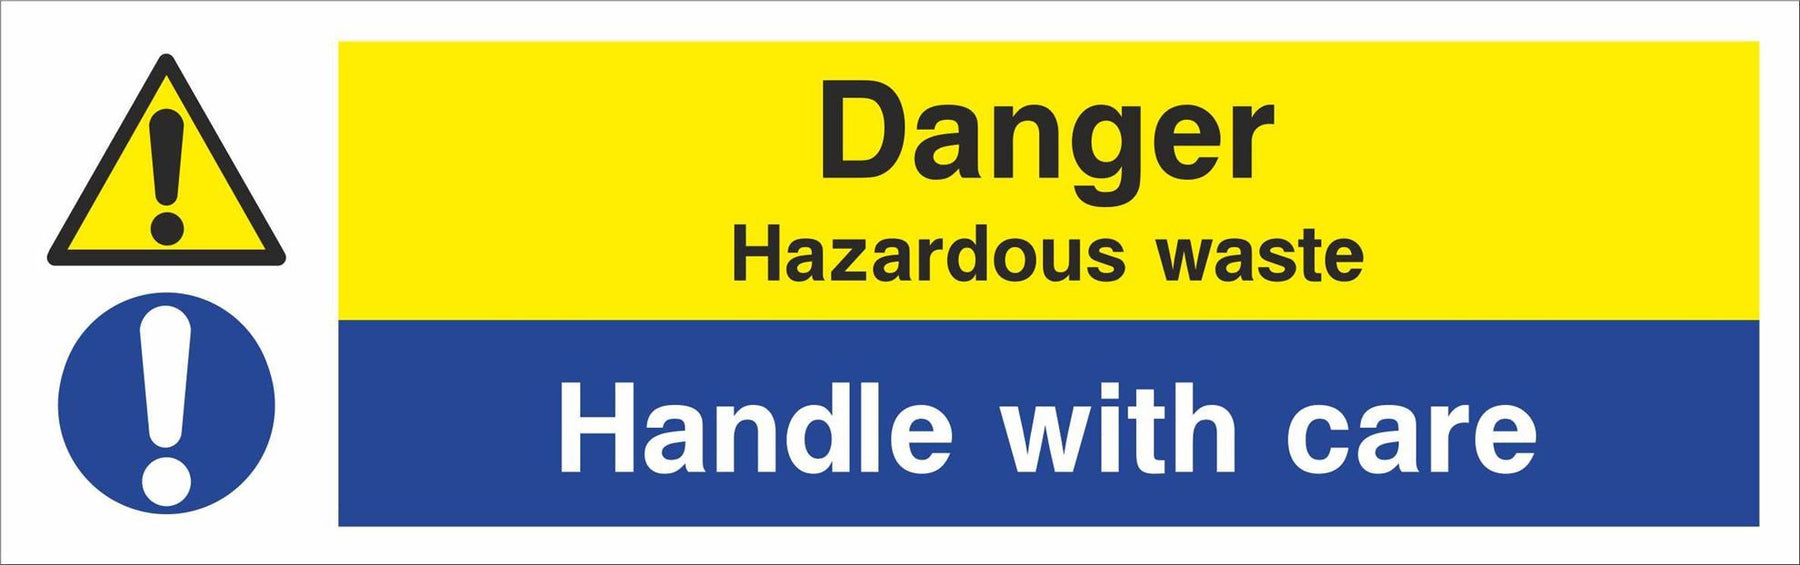 Danger Hazardous waste Handle with care